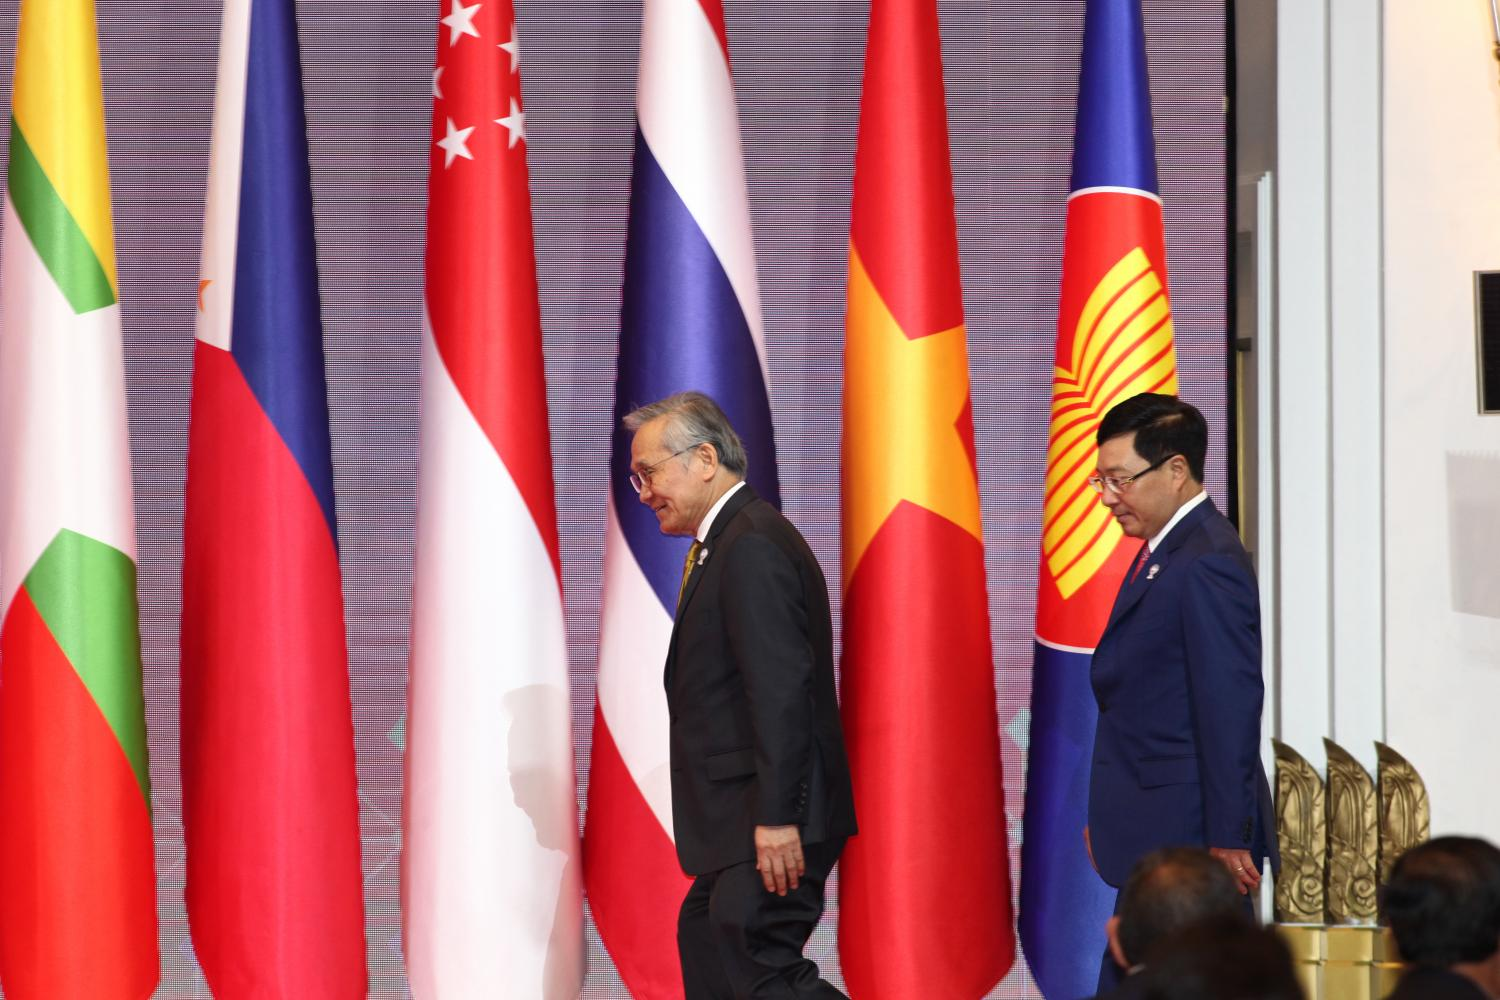 Thailand's Foreign Minister Don Pramudwinai, left, and Vietnam's Deputy Prime Minister and Foreign Minister Pham Binh Minh at the Asean Foreign Ministers' Meeting in Bangkok in June. Vietnam becomes Asean chair next year.PATTARAPONG CHATPATTARASILL